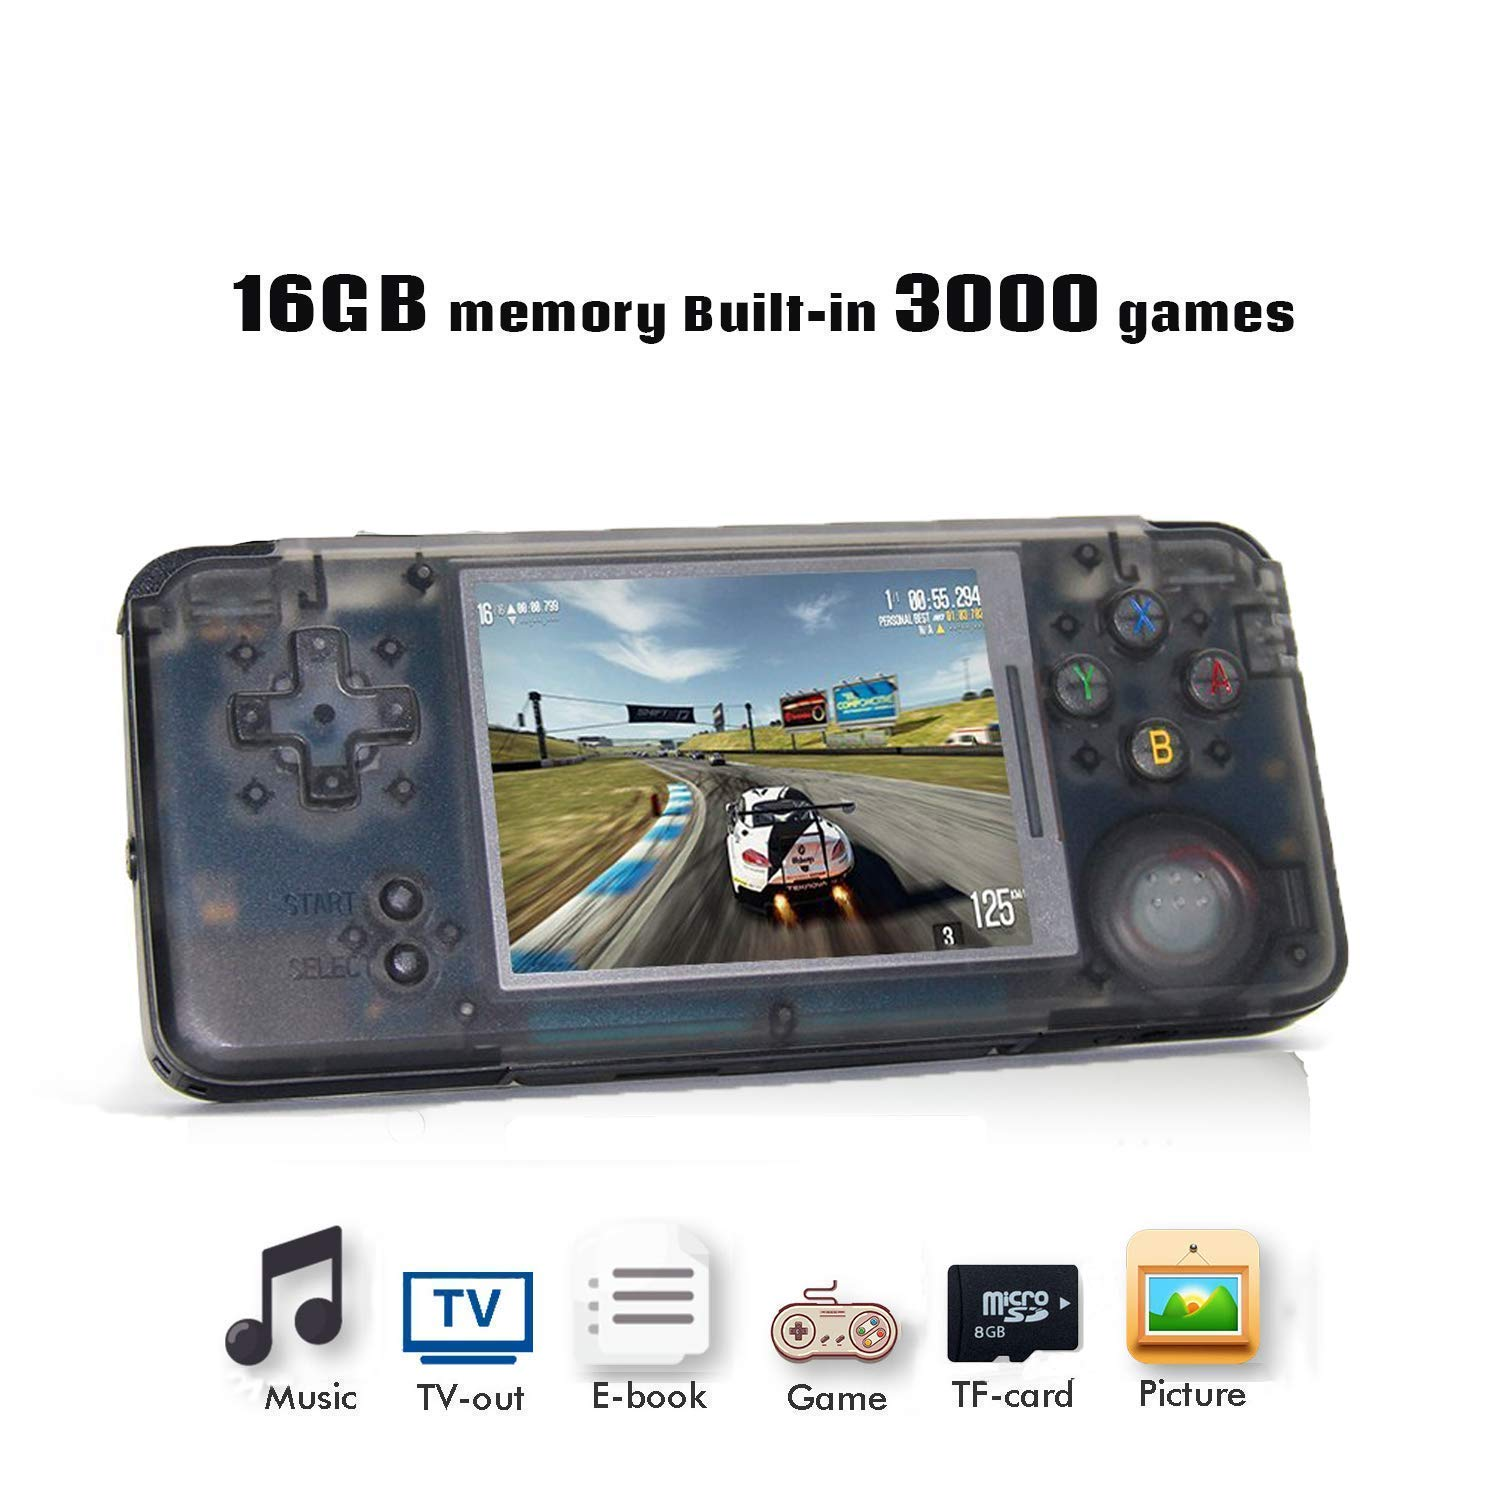 BAORUITENG Handheld Game Console, Retro Game Console 3 Inch HD Screen 3000 Classic Game Console ,Portable Video Game Great Gift for Kids (Black)